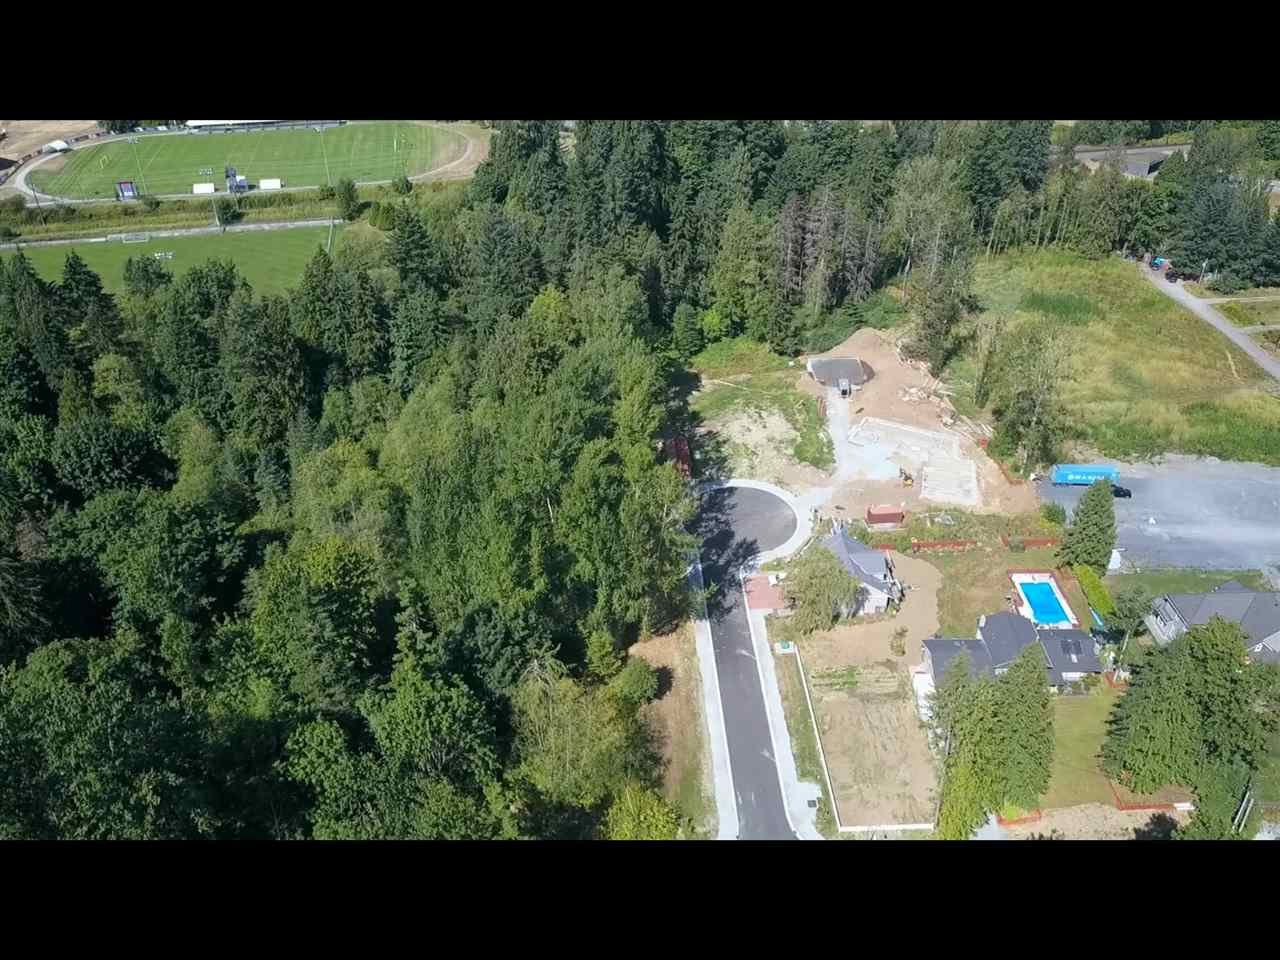 Photo 6: Photos: 7457 228 Street in Langley: Salmon River Land for sale : MLS®# R2215780